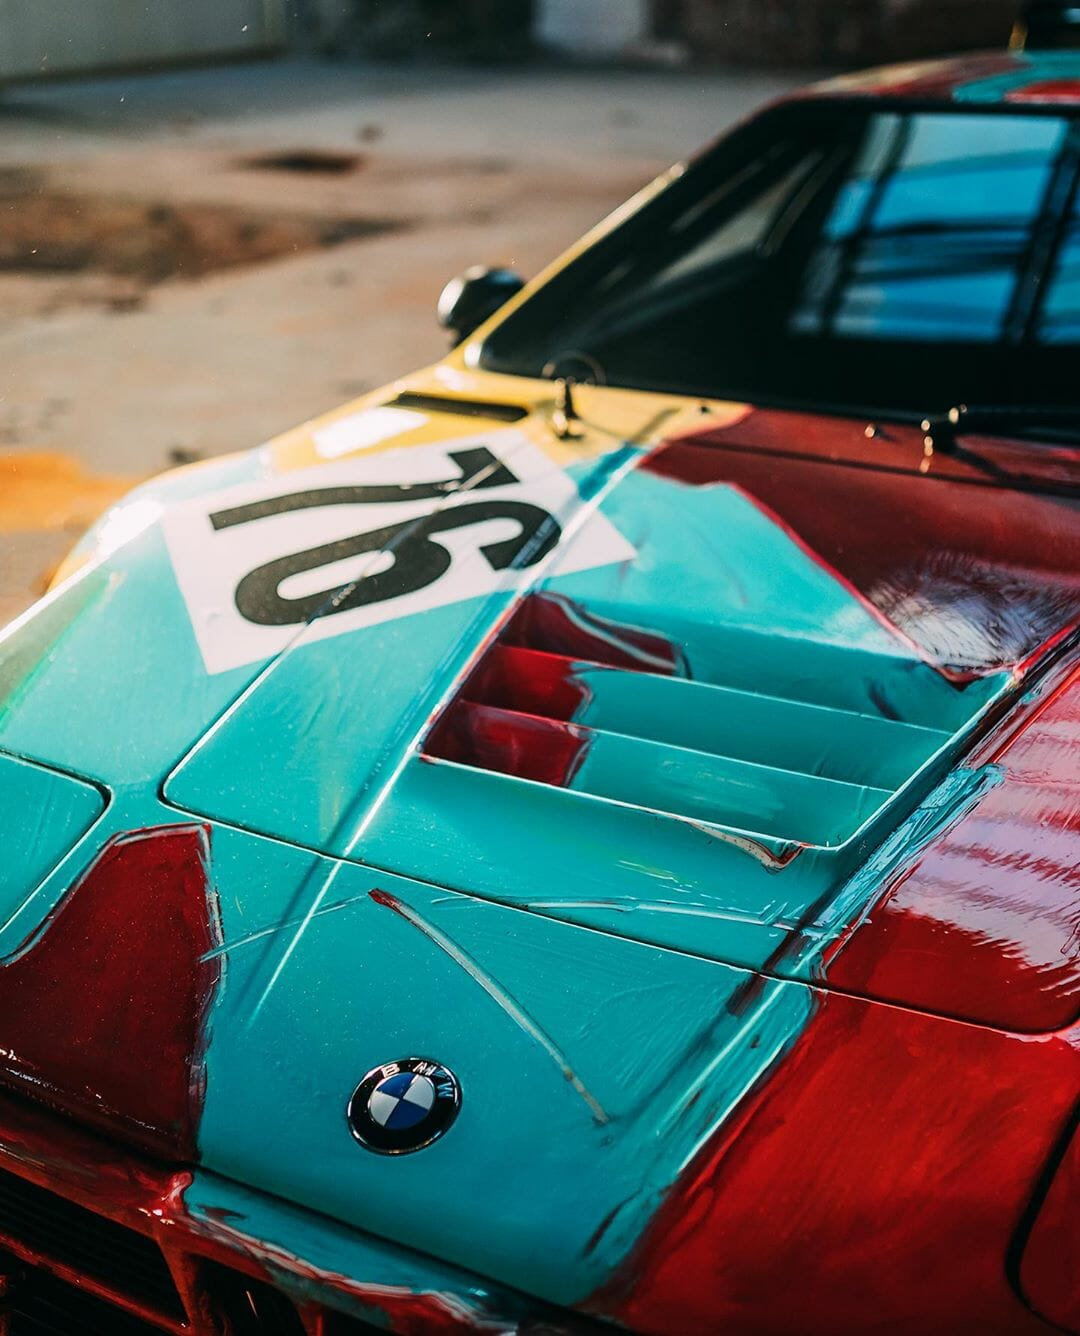 BMW M1 by Andy Warhol - BMW Art Cars - Picture 6 by Stephan Bauer